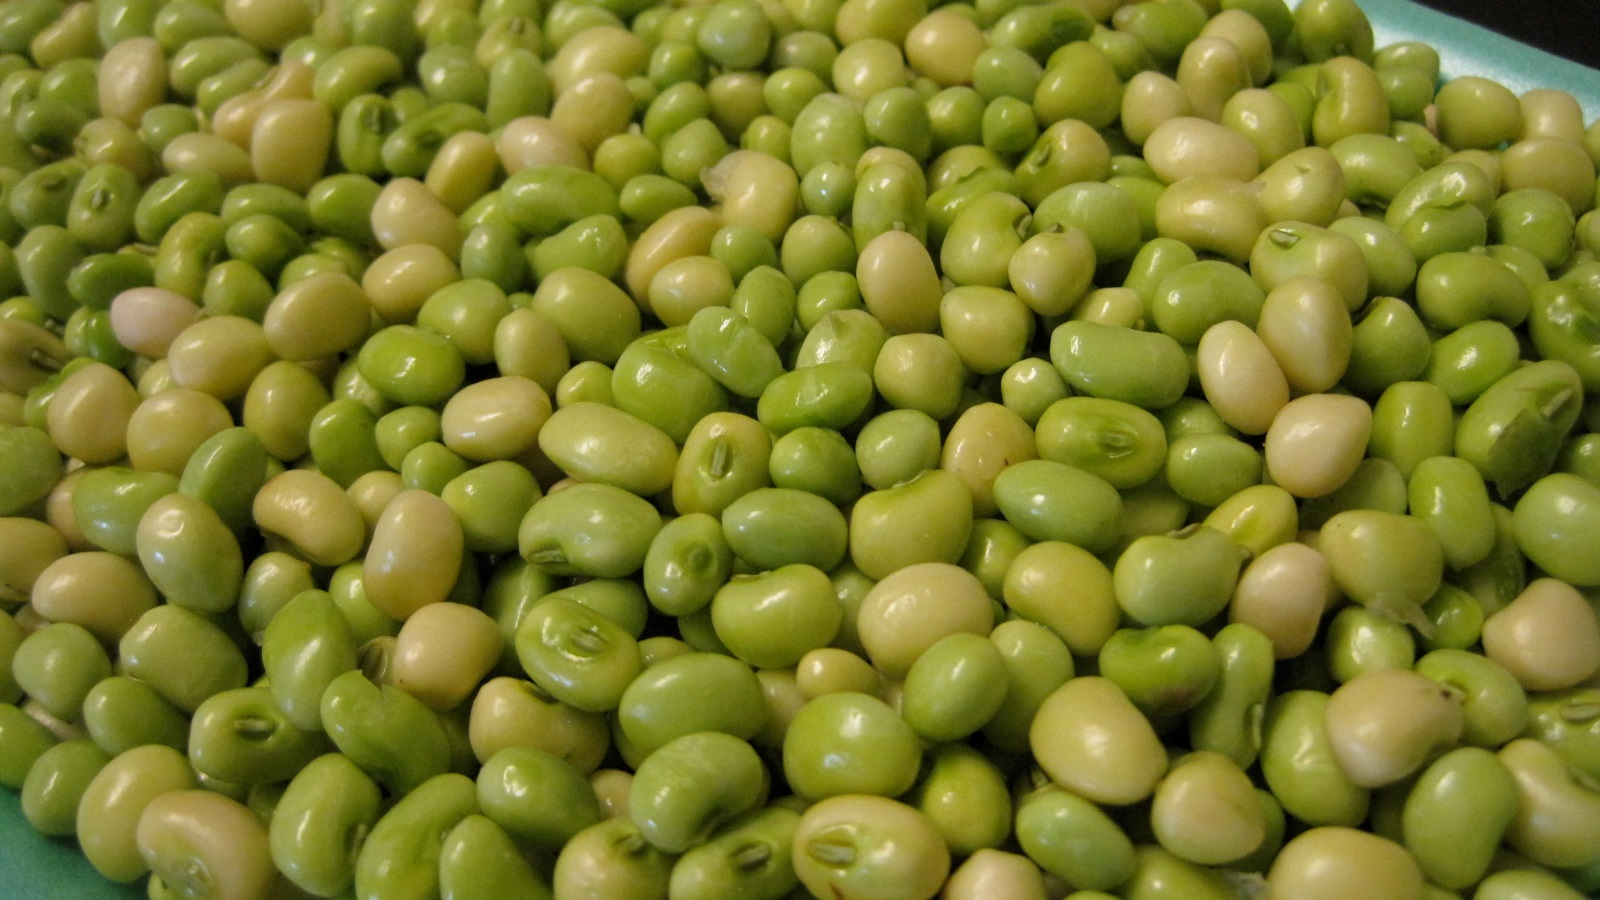 Southern Peas - Fresh, local, seasonal, shelled peas and butterbeansPea & Bean Varieties Currently Available: Cream 40 Peas, Cream Elite Peas, Pink Eye Purple Hull Peas, Butterpeas, & Butterbeans